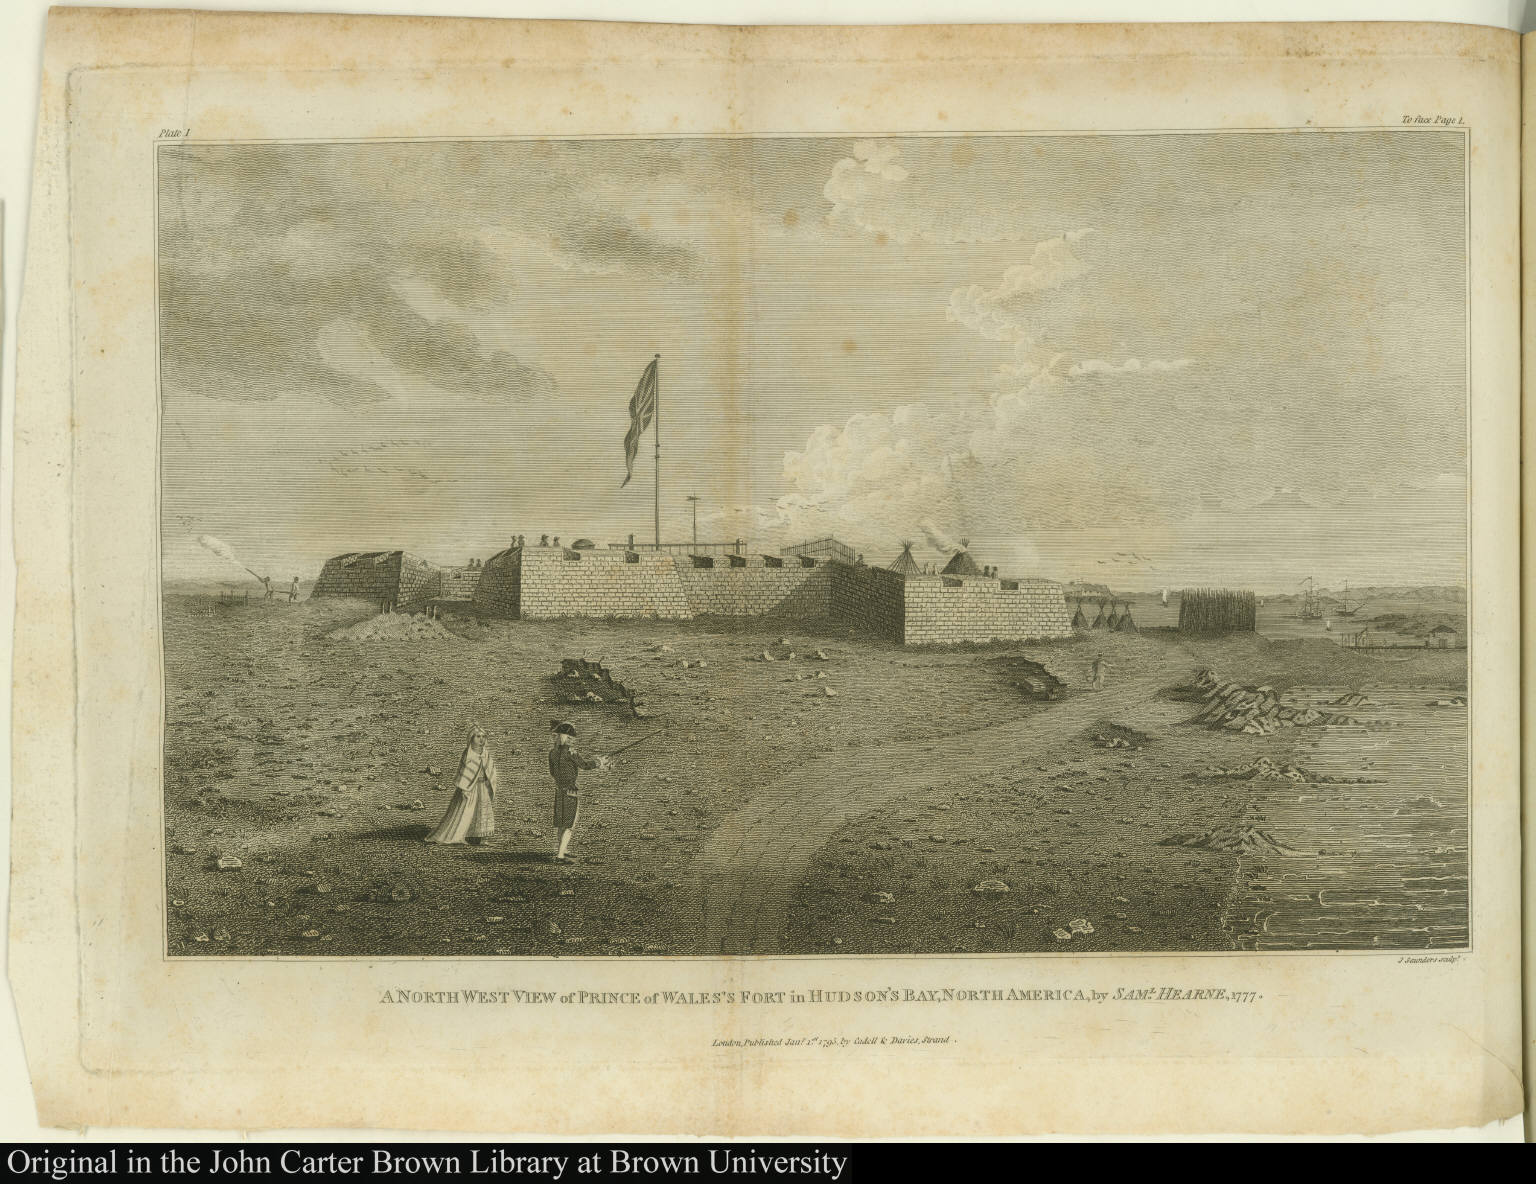 A north west view of Prince of Wales's Fort in Hudson's Bay, North America, by Saml. Hearne, 1777.